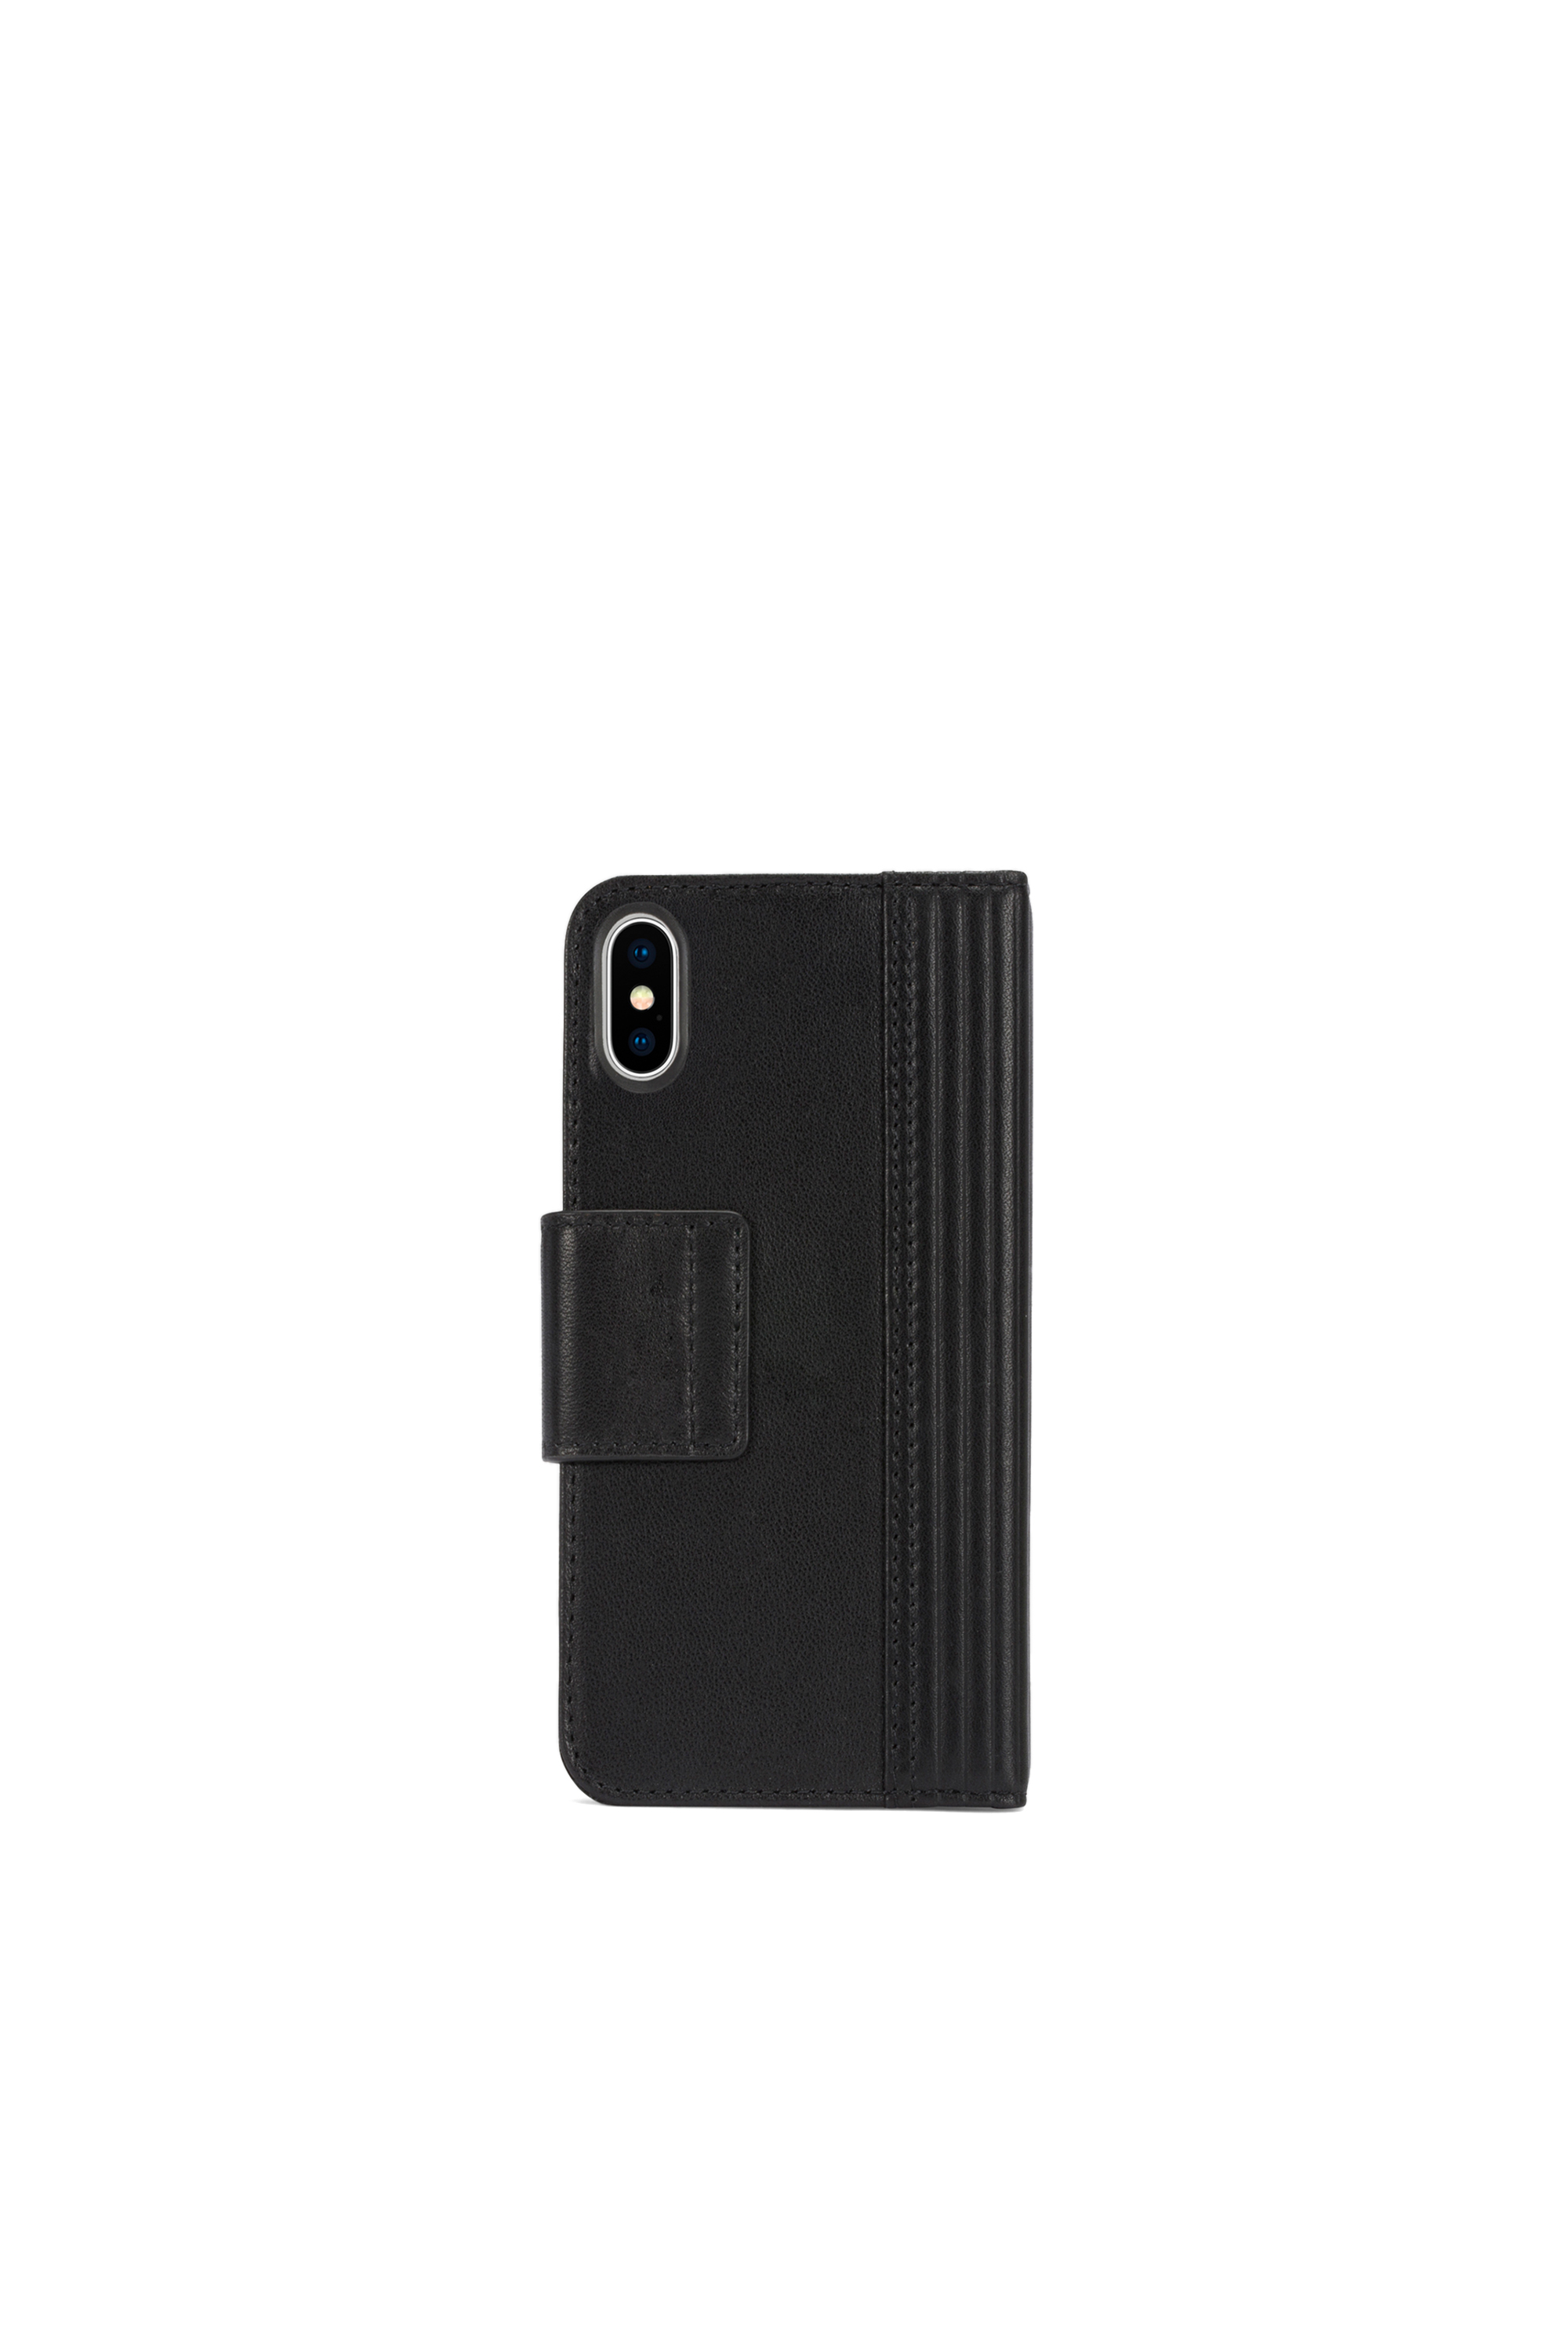 Diesel - BLACK LINED LEATHER IPHONE X FOLIO,  - Klappcover - Image 4